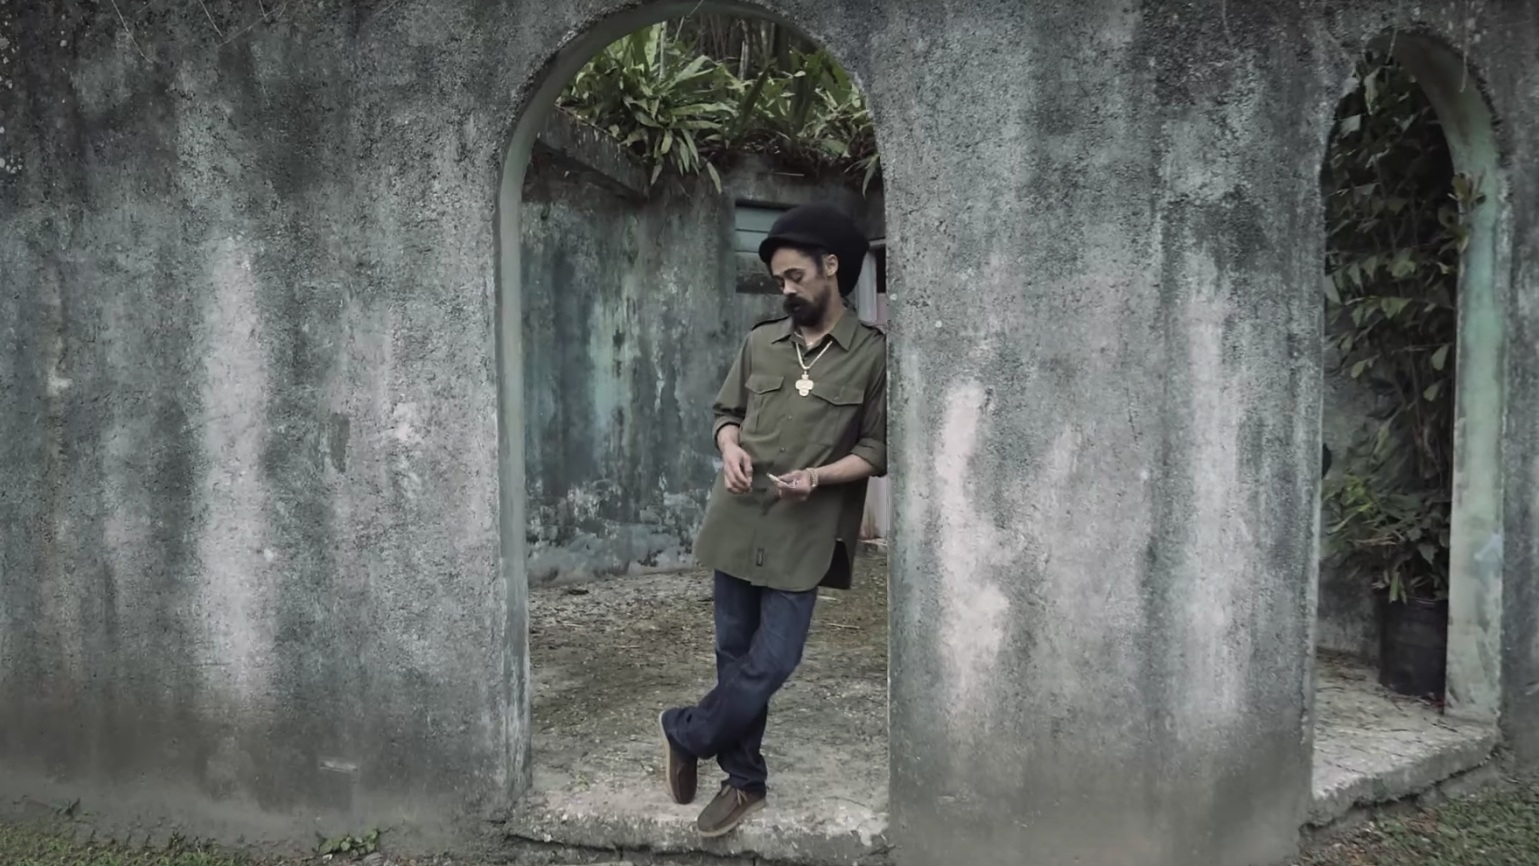 """Slave Mill (Acoustic) -Damian """"Jr. Gong"""" Marley - One take performance video"""